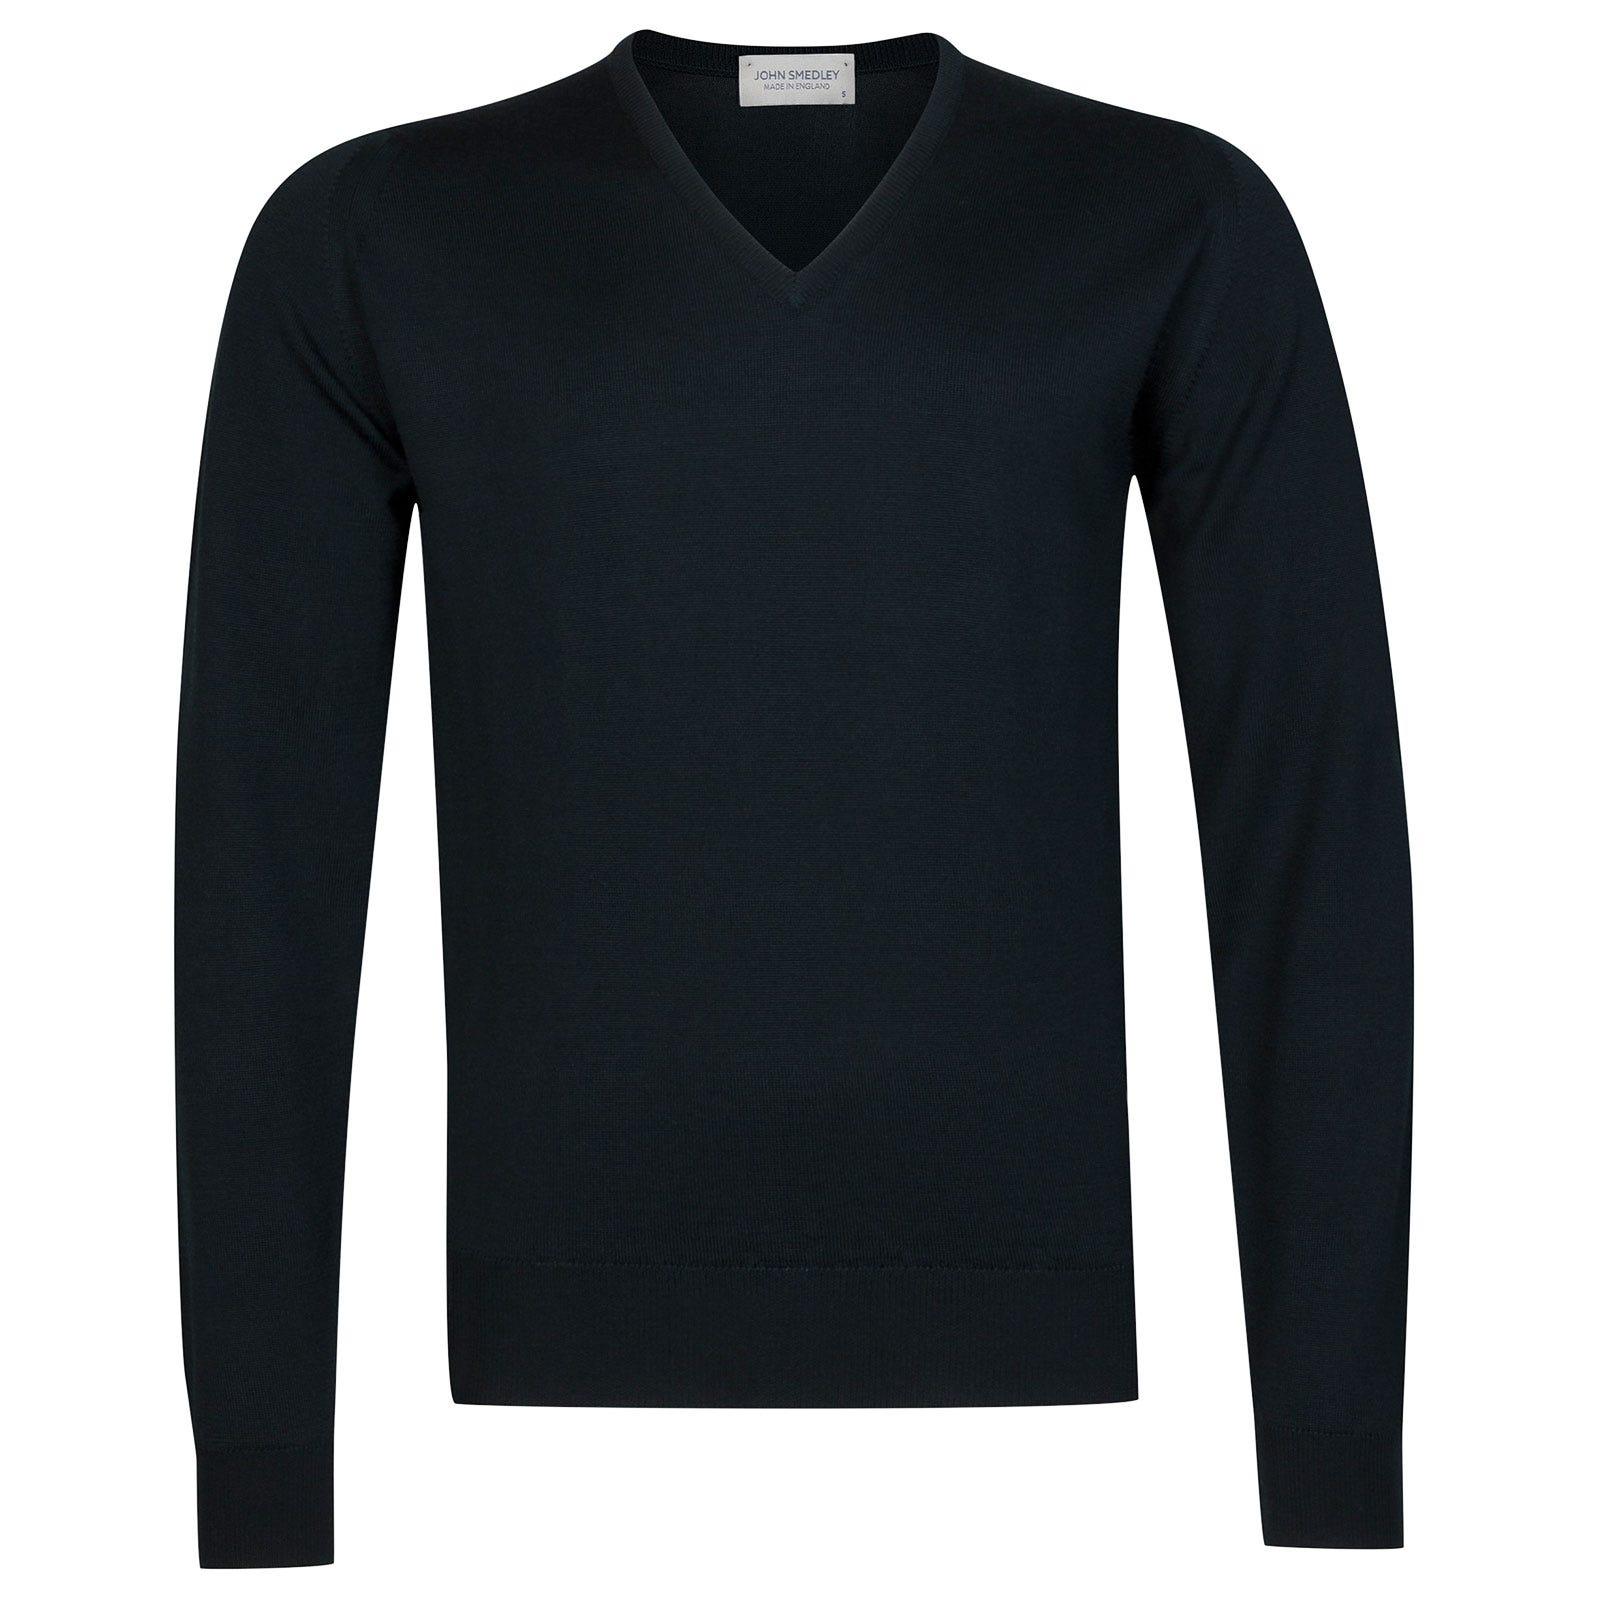 John Smedley Riber Merino Wool Pullover in Racing Green-M